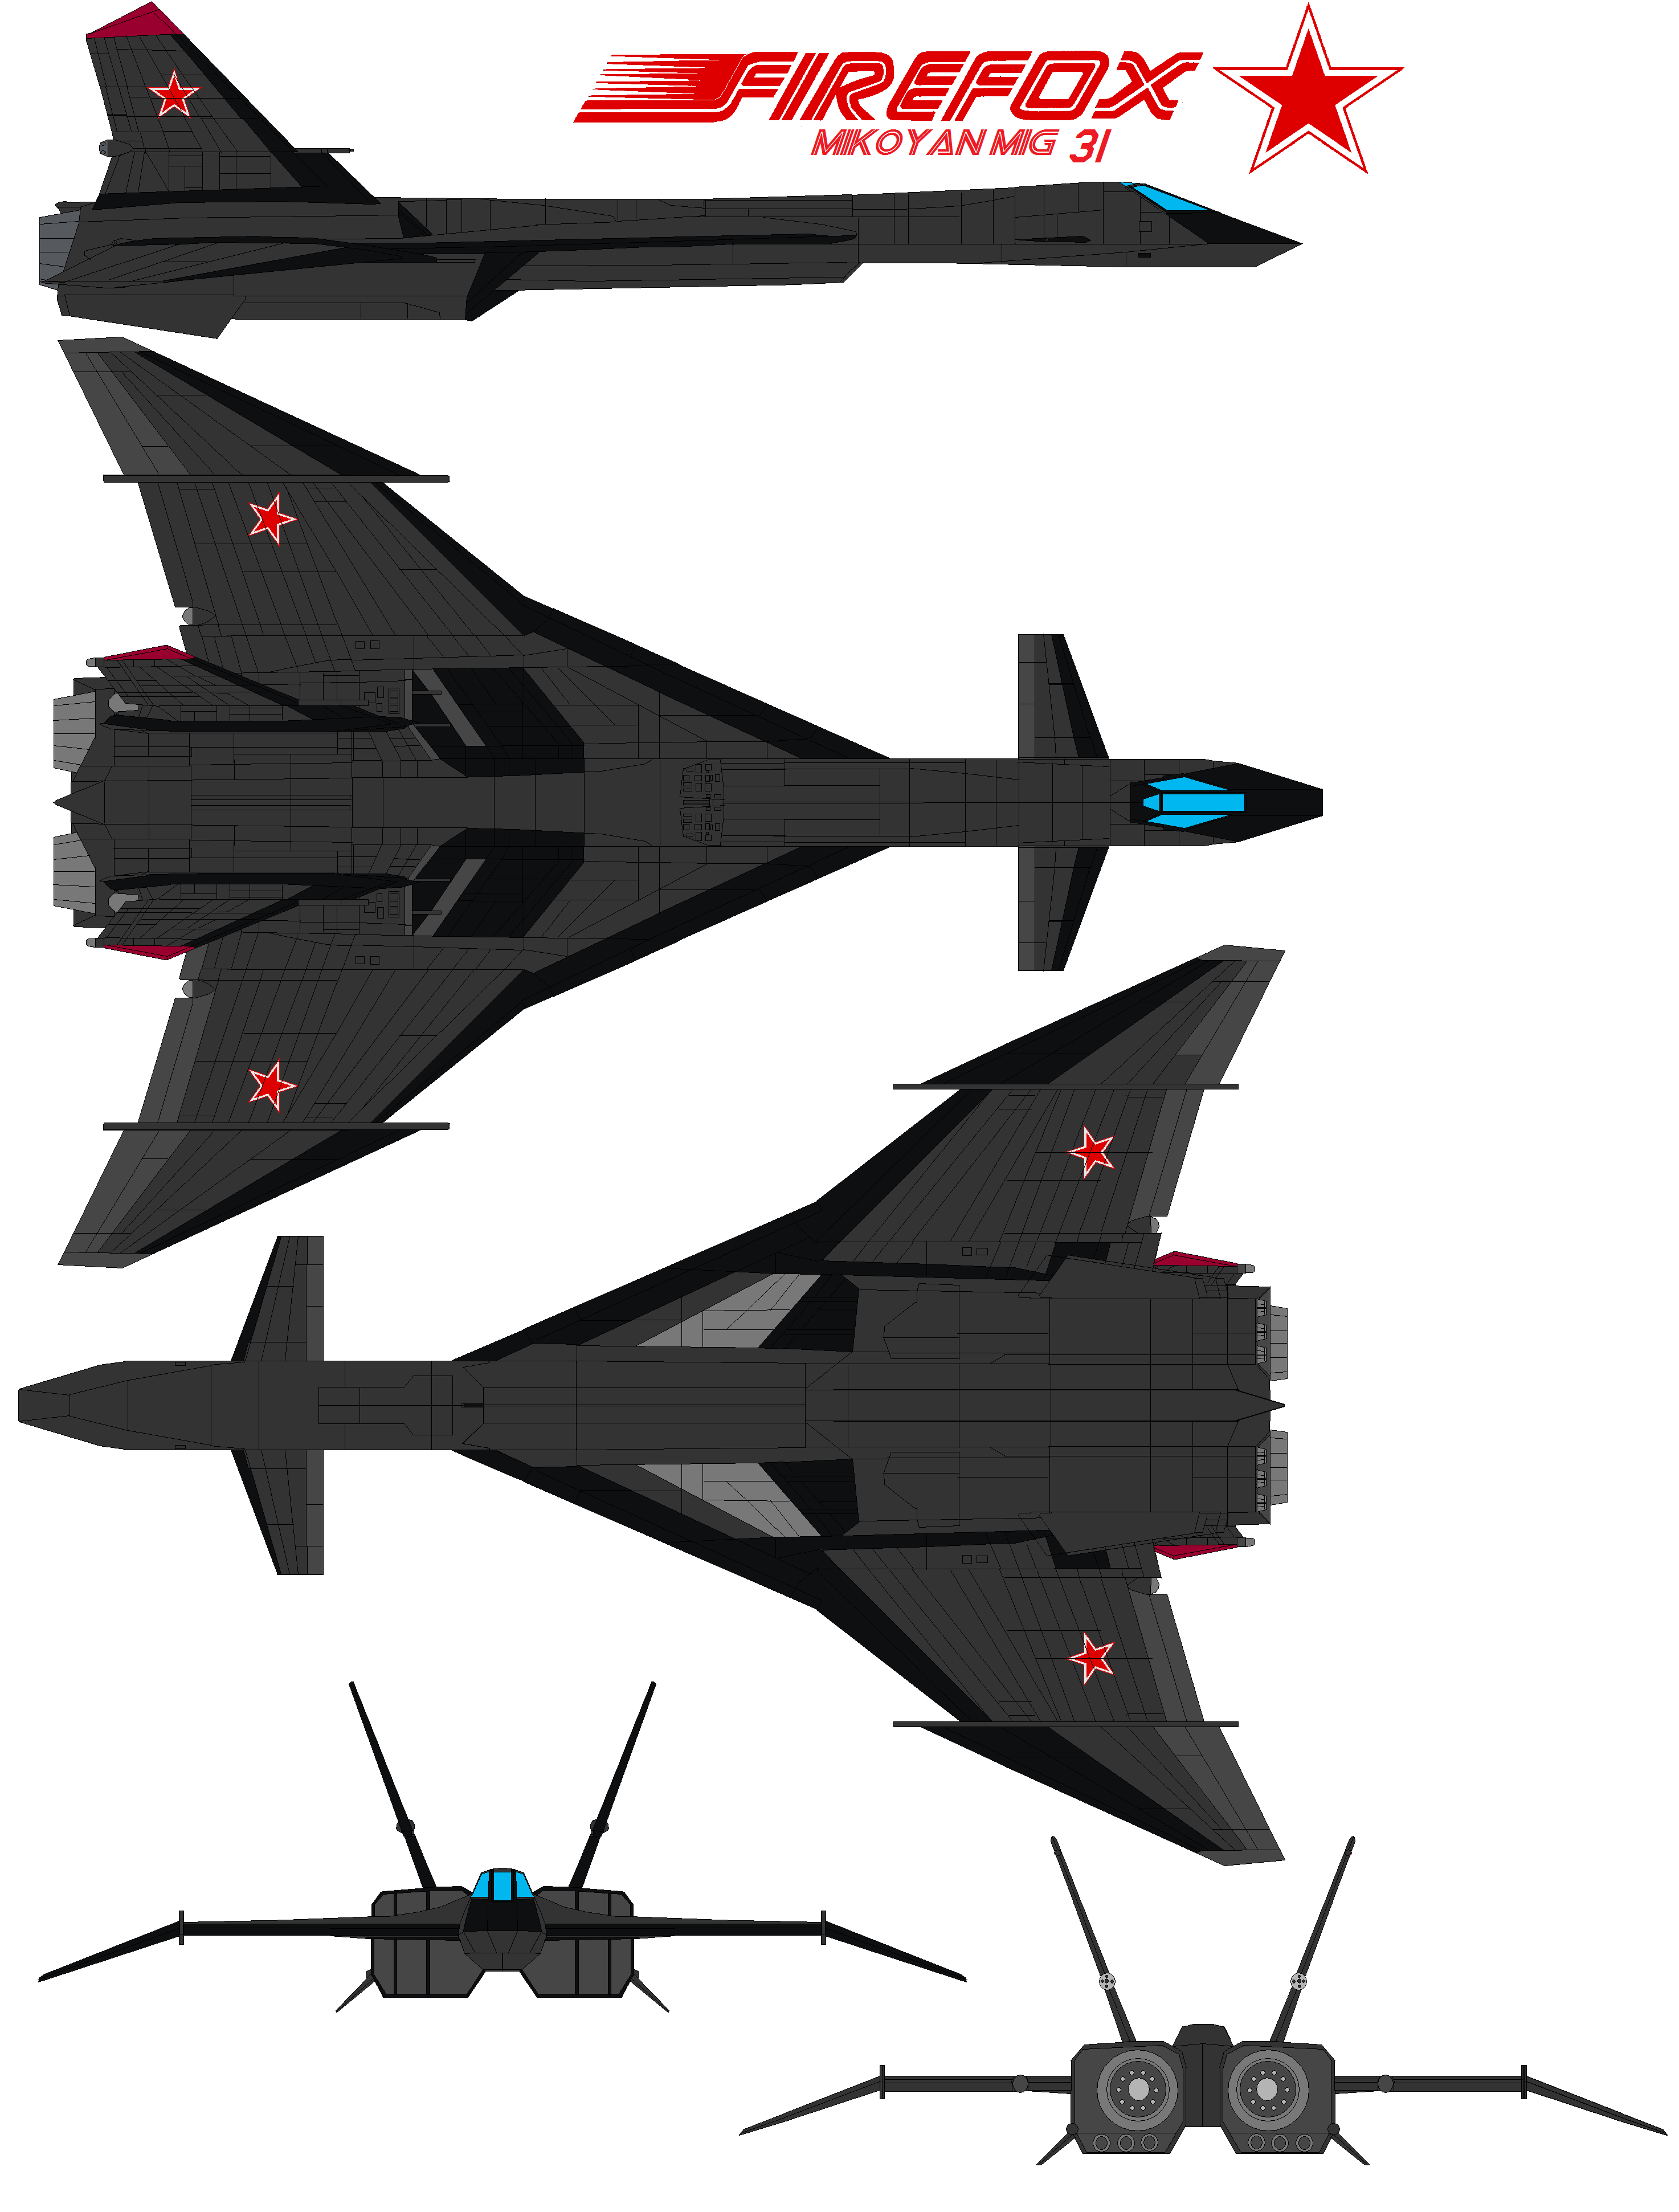 Firefox mig-31 aircraft 2 by bagera3005